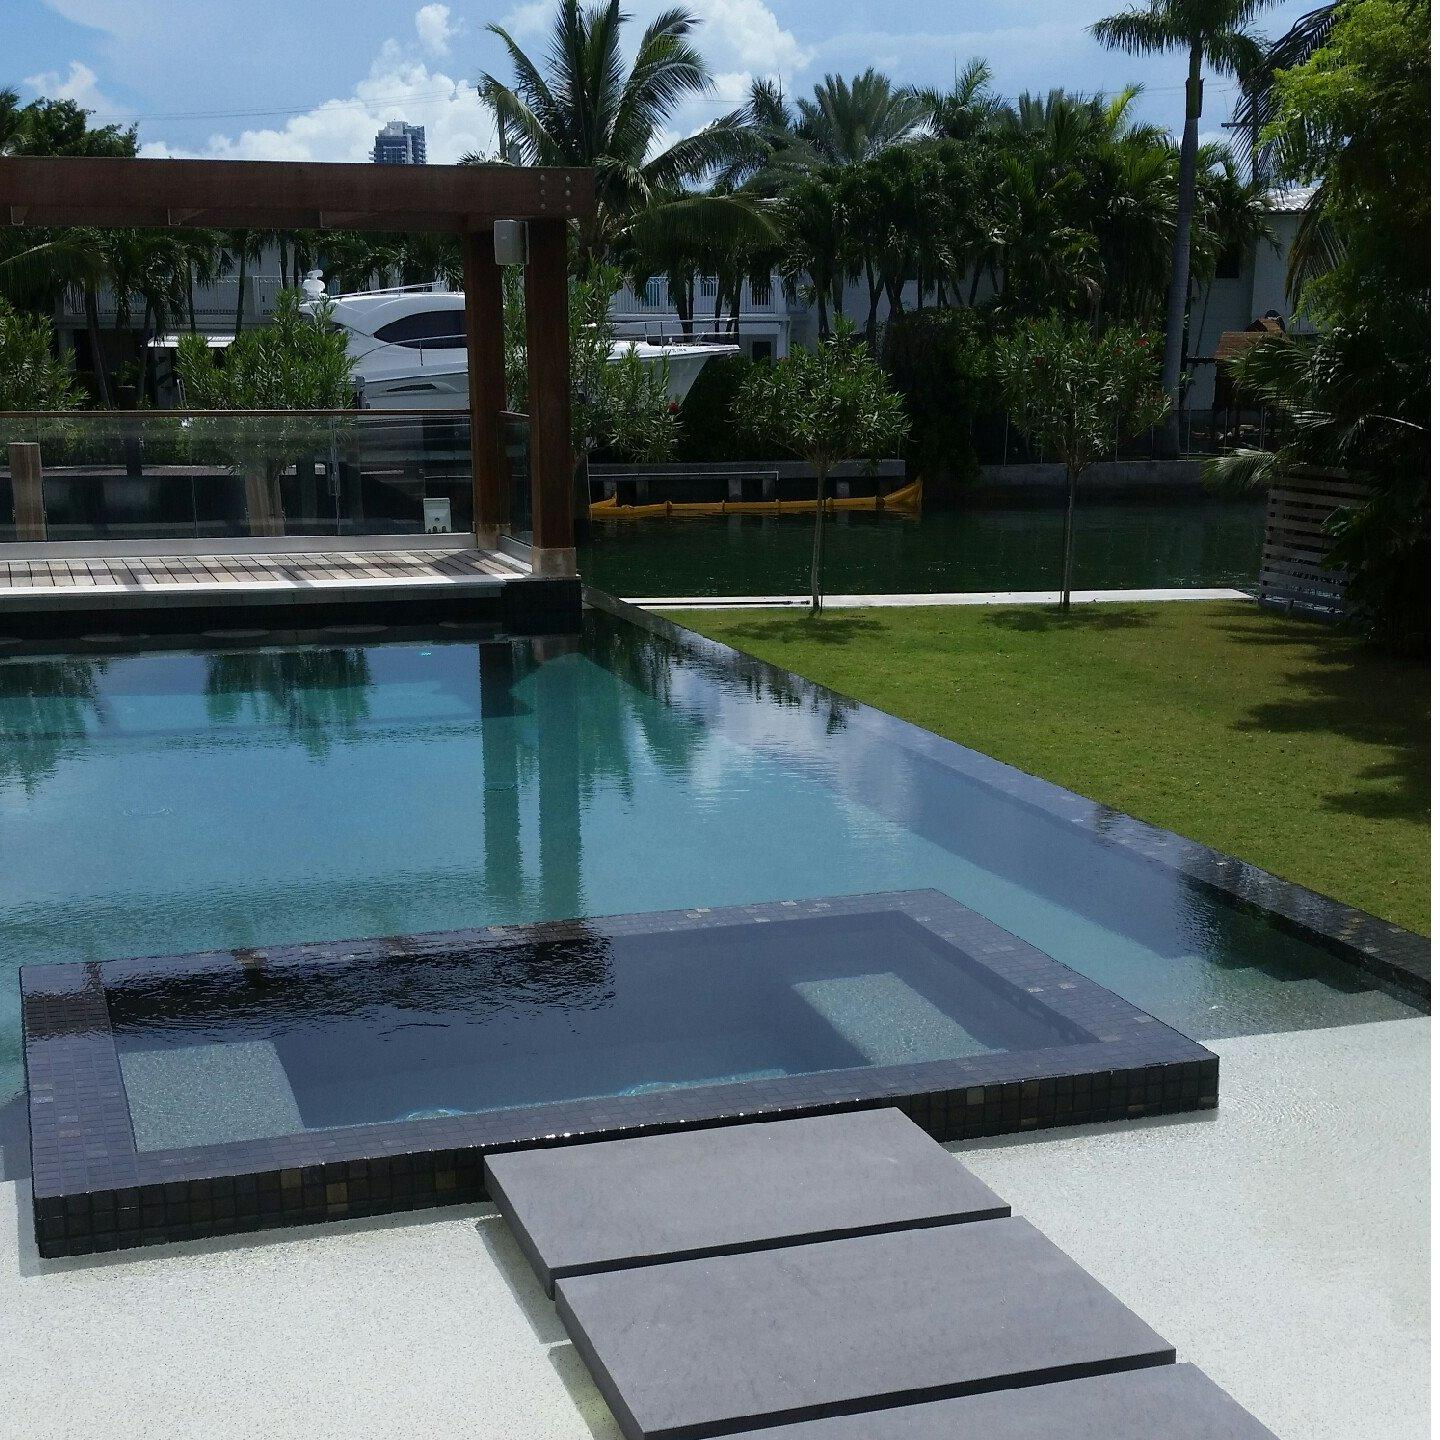 Swimming Pool Companies : Swimming pool contractors near me in palm beach florida